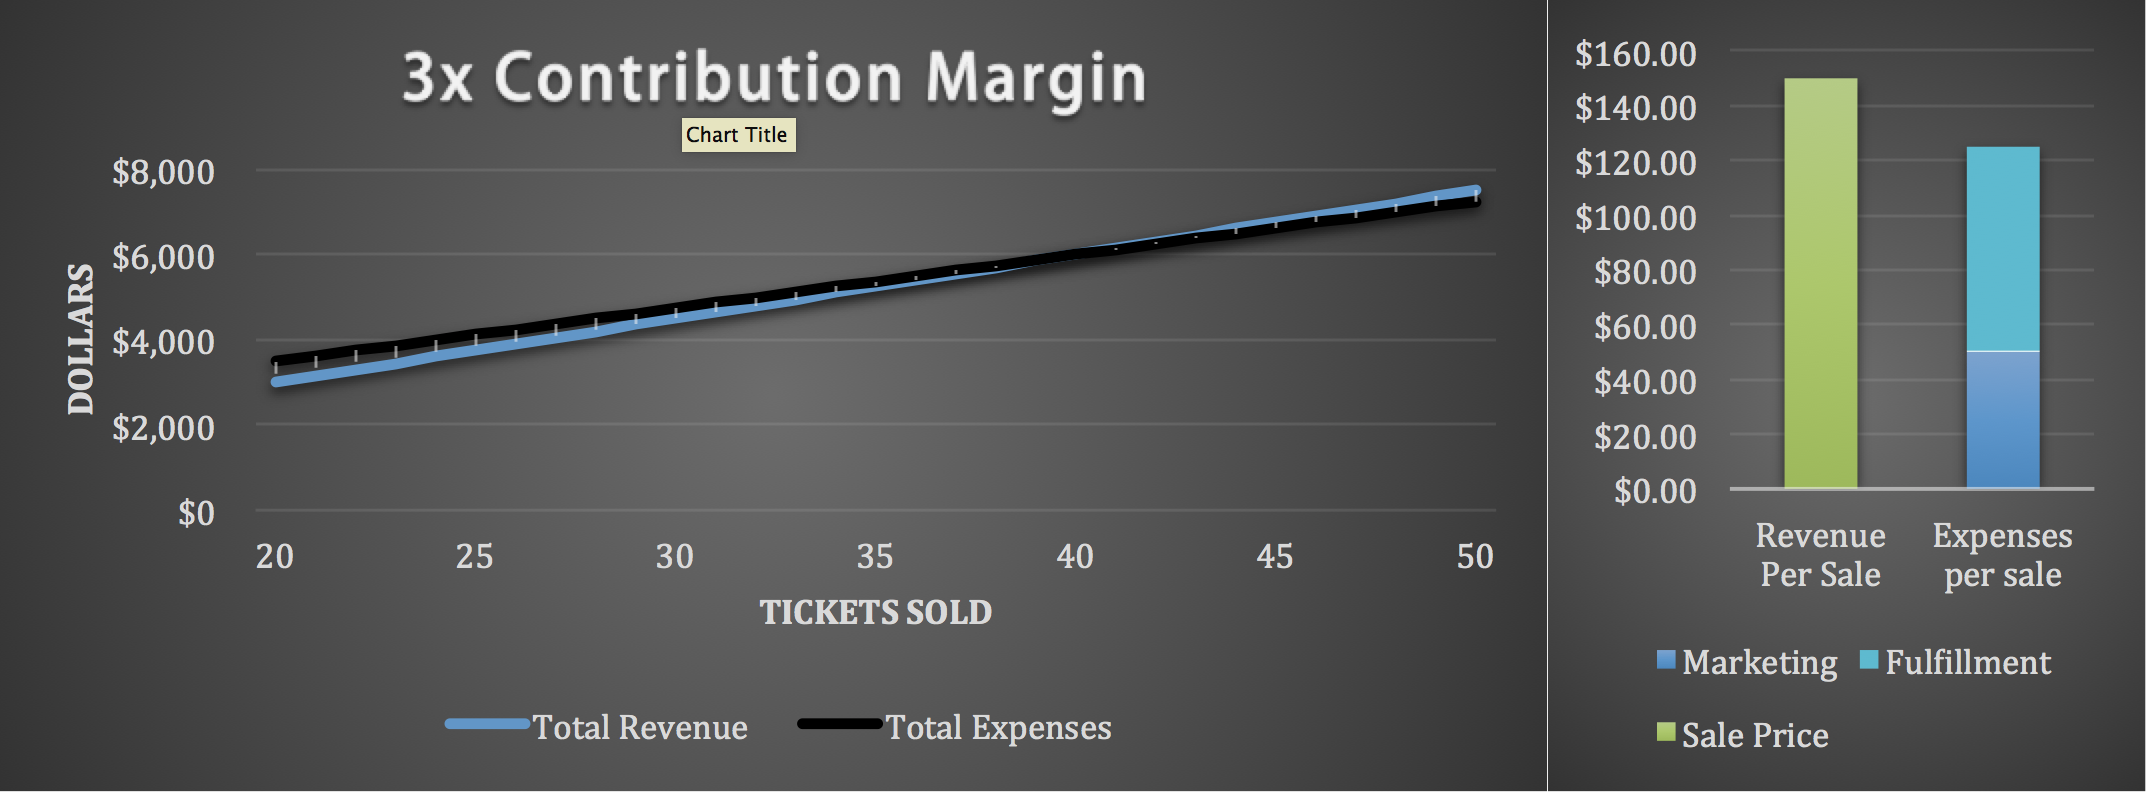 3X Contribution Margin